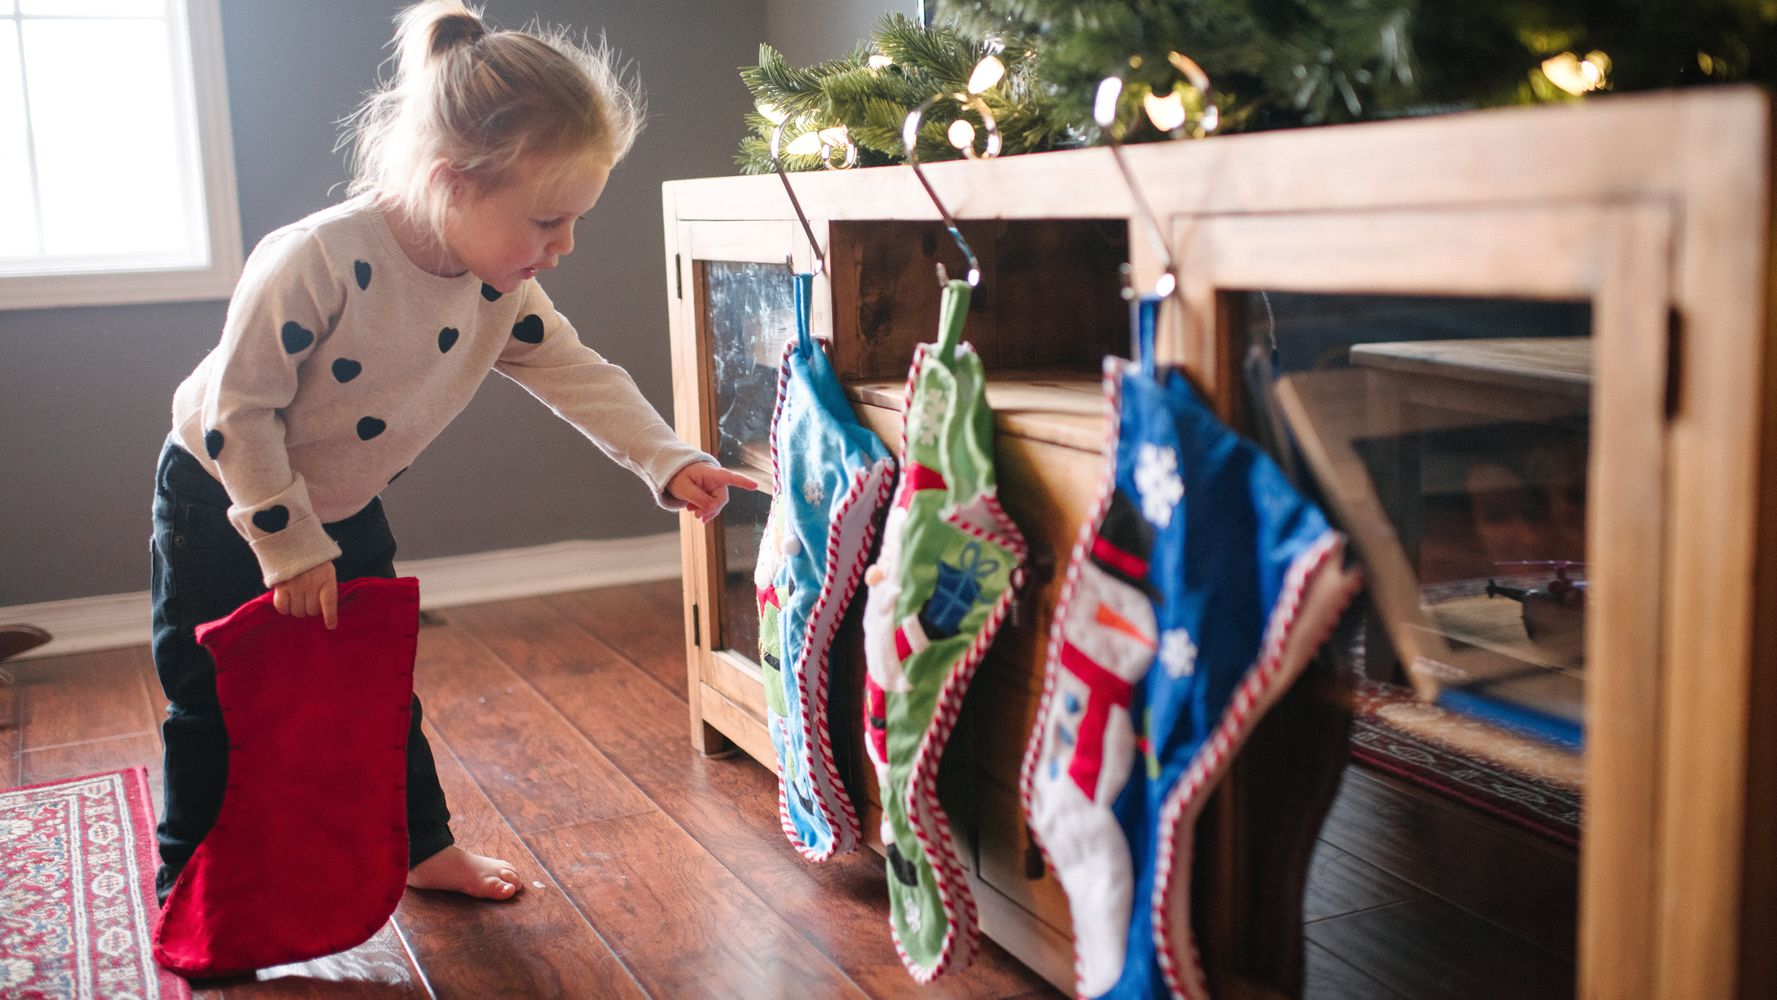 No Fireplace For Santa Or Stockings? Here's How To Save Christmas